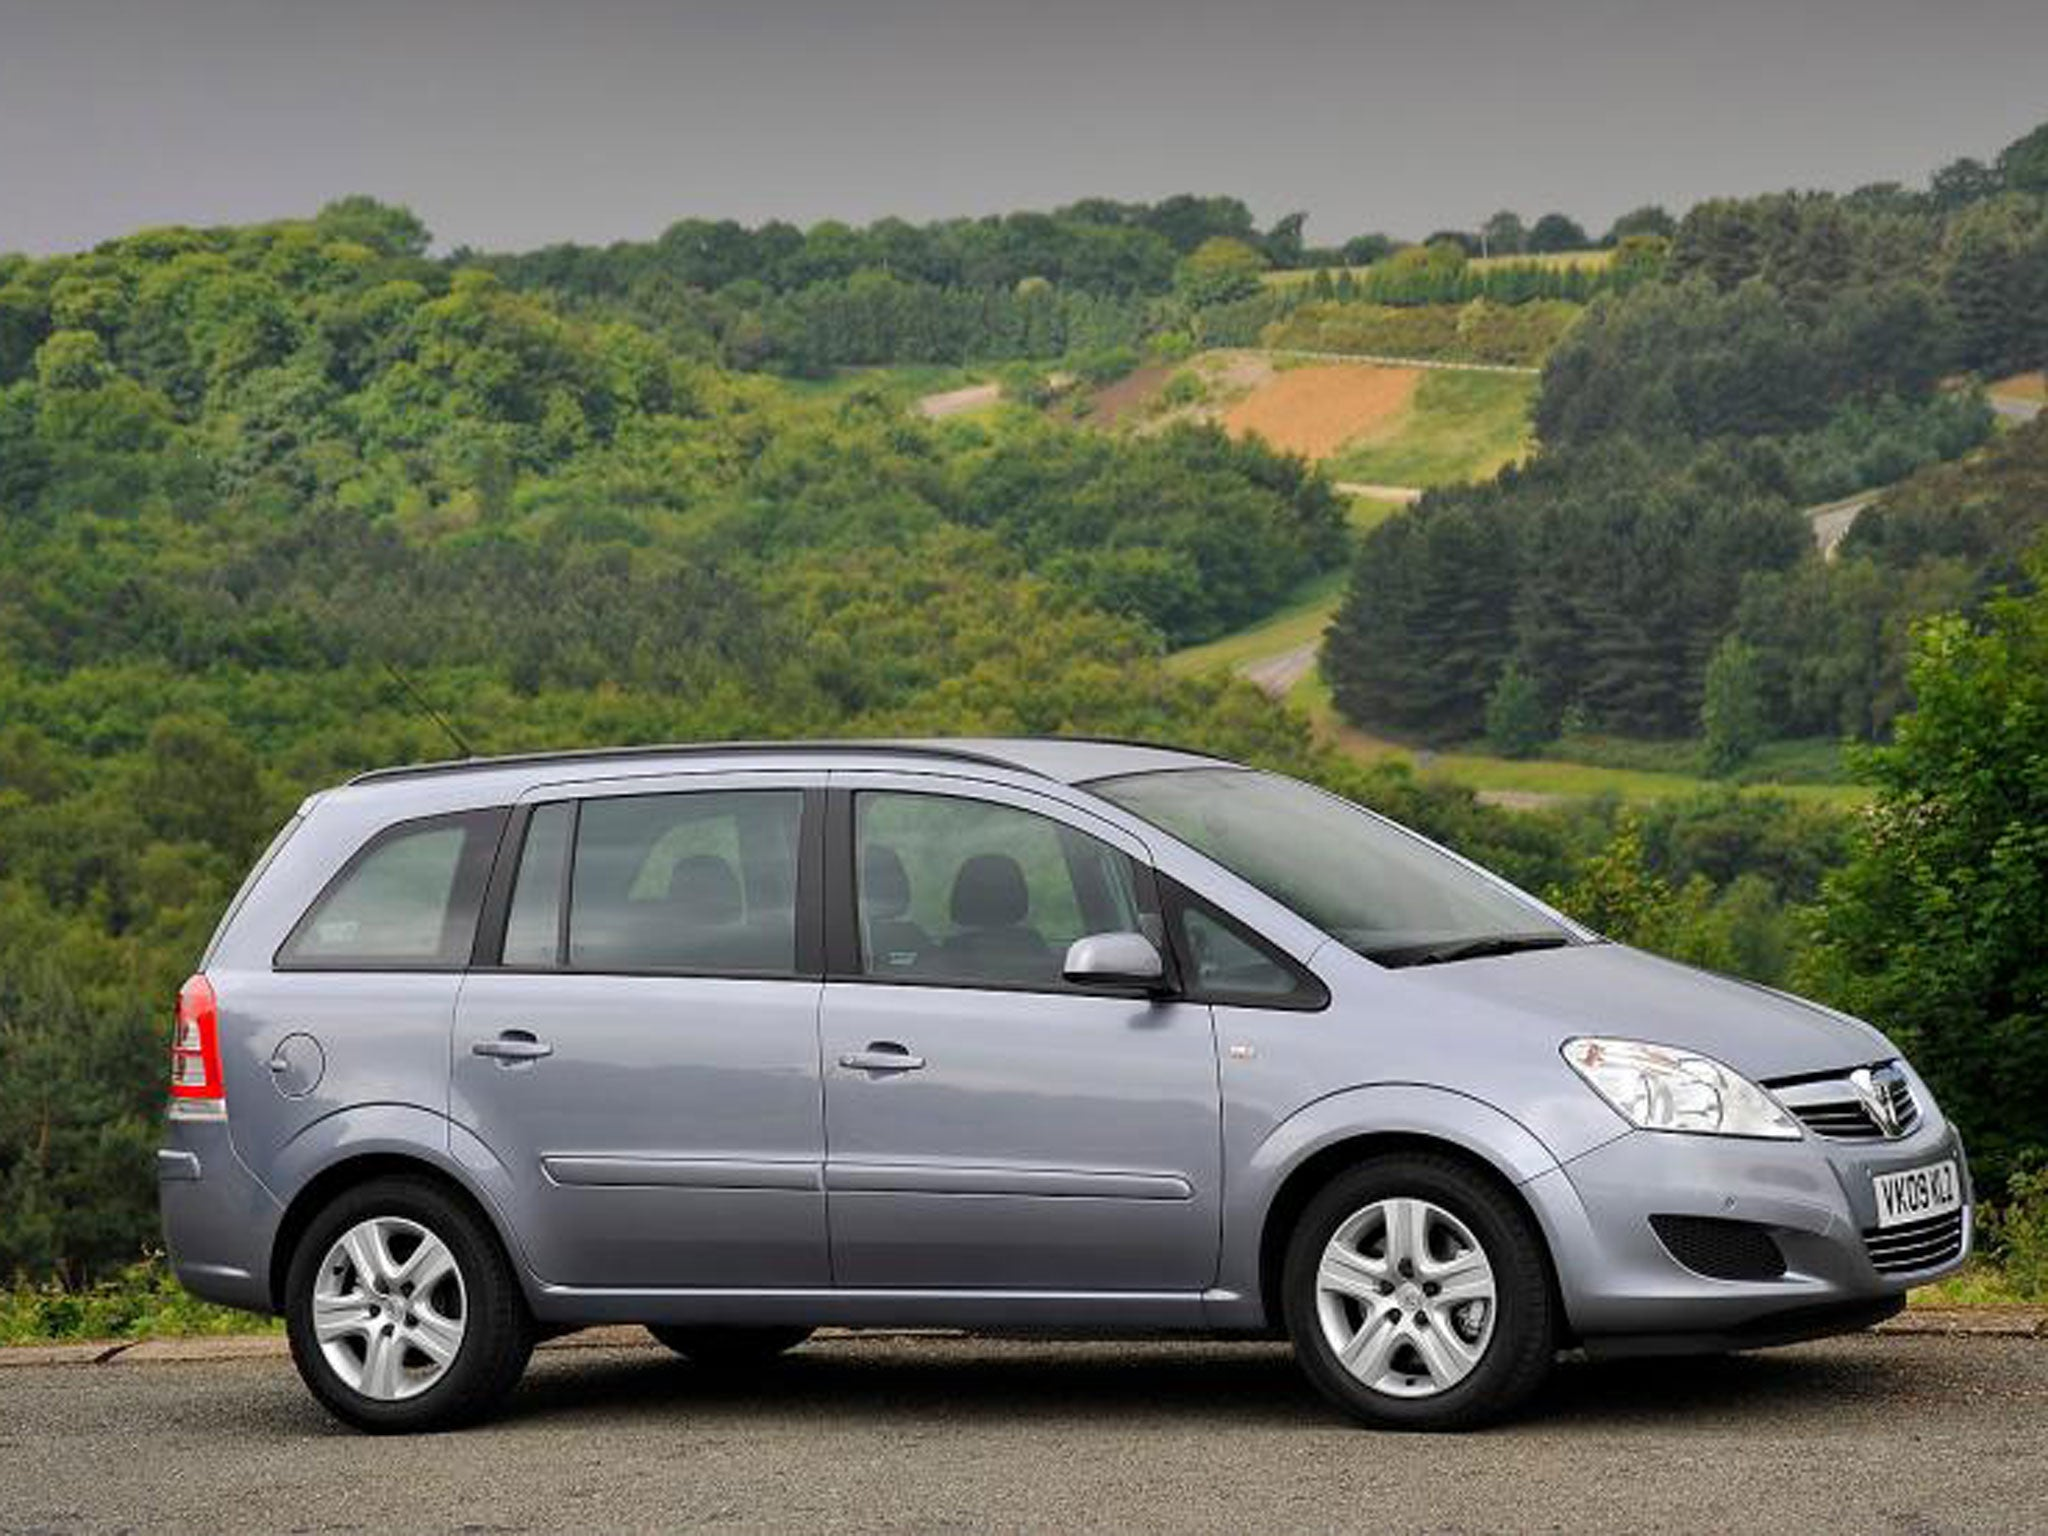 Mpvs The Seven Best Buys From Volkswagen Touran To Vauxhall Zafira Boot Excellent